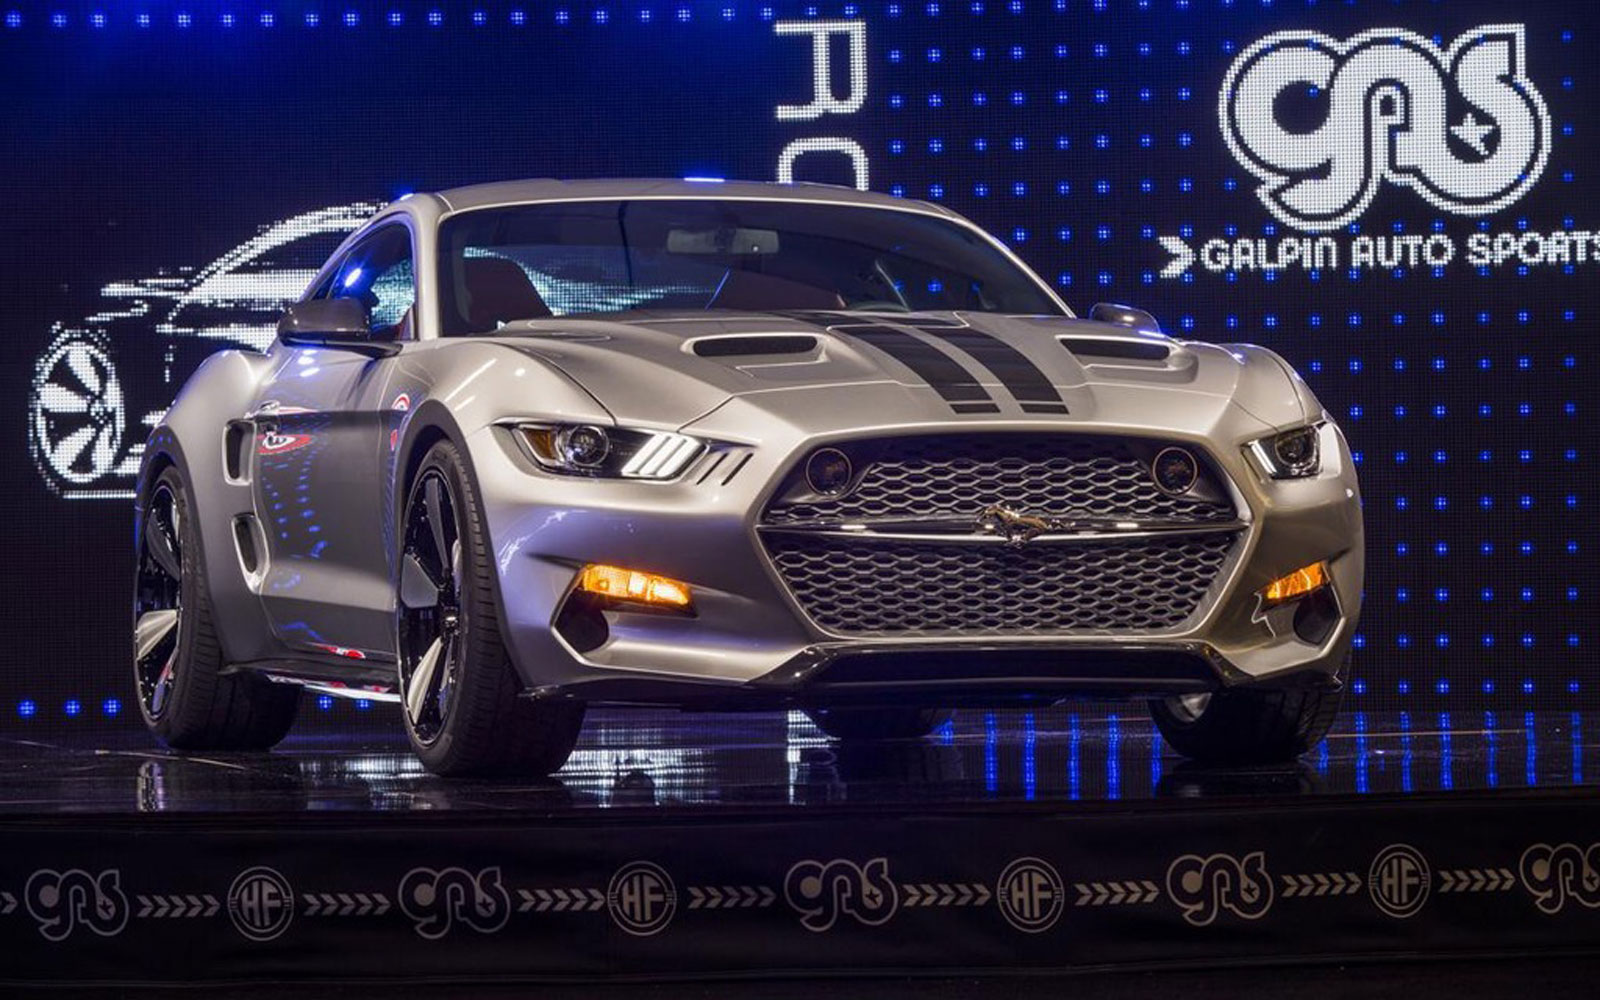 The Fisker Galpin Auto Sports 725HP Mustang Rocket